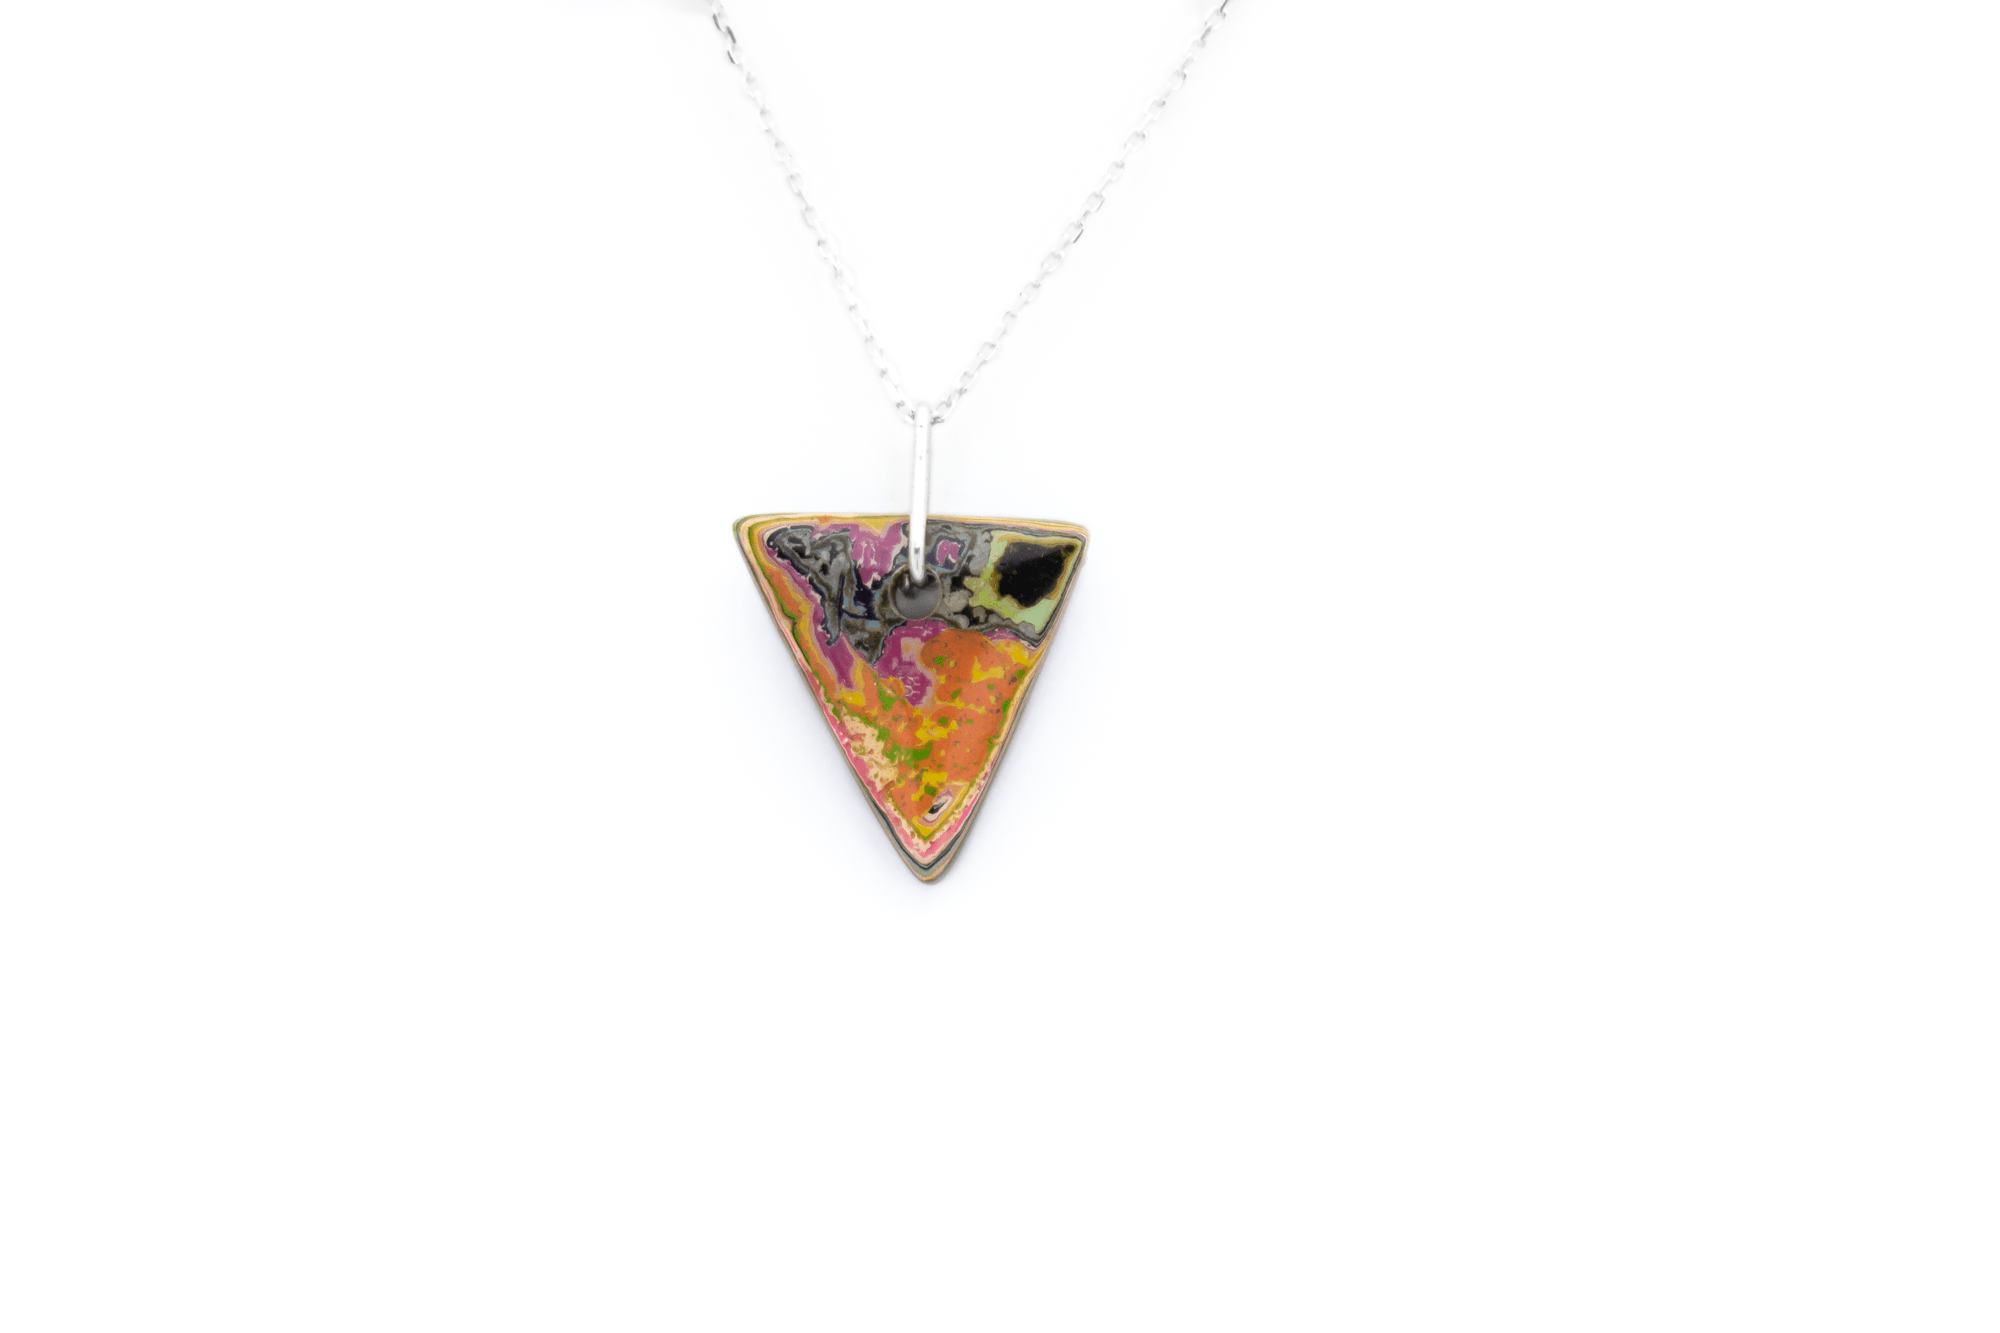 Unique graffiti stone pendant necklace.